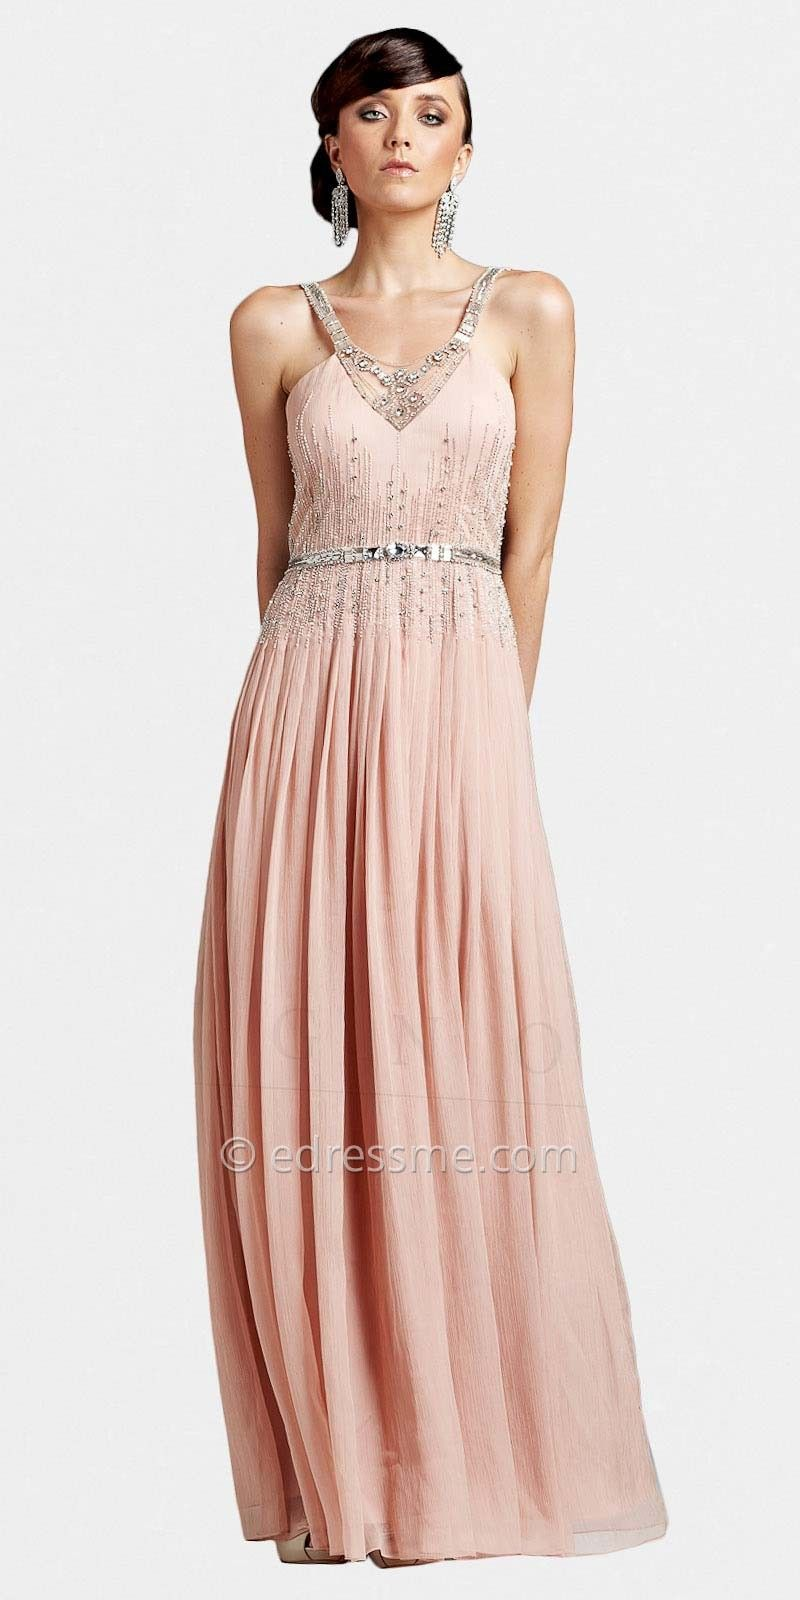 Delicate Chiffon Beaded Vintage Inspired Prom Dresses By Mignon